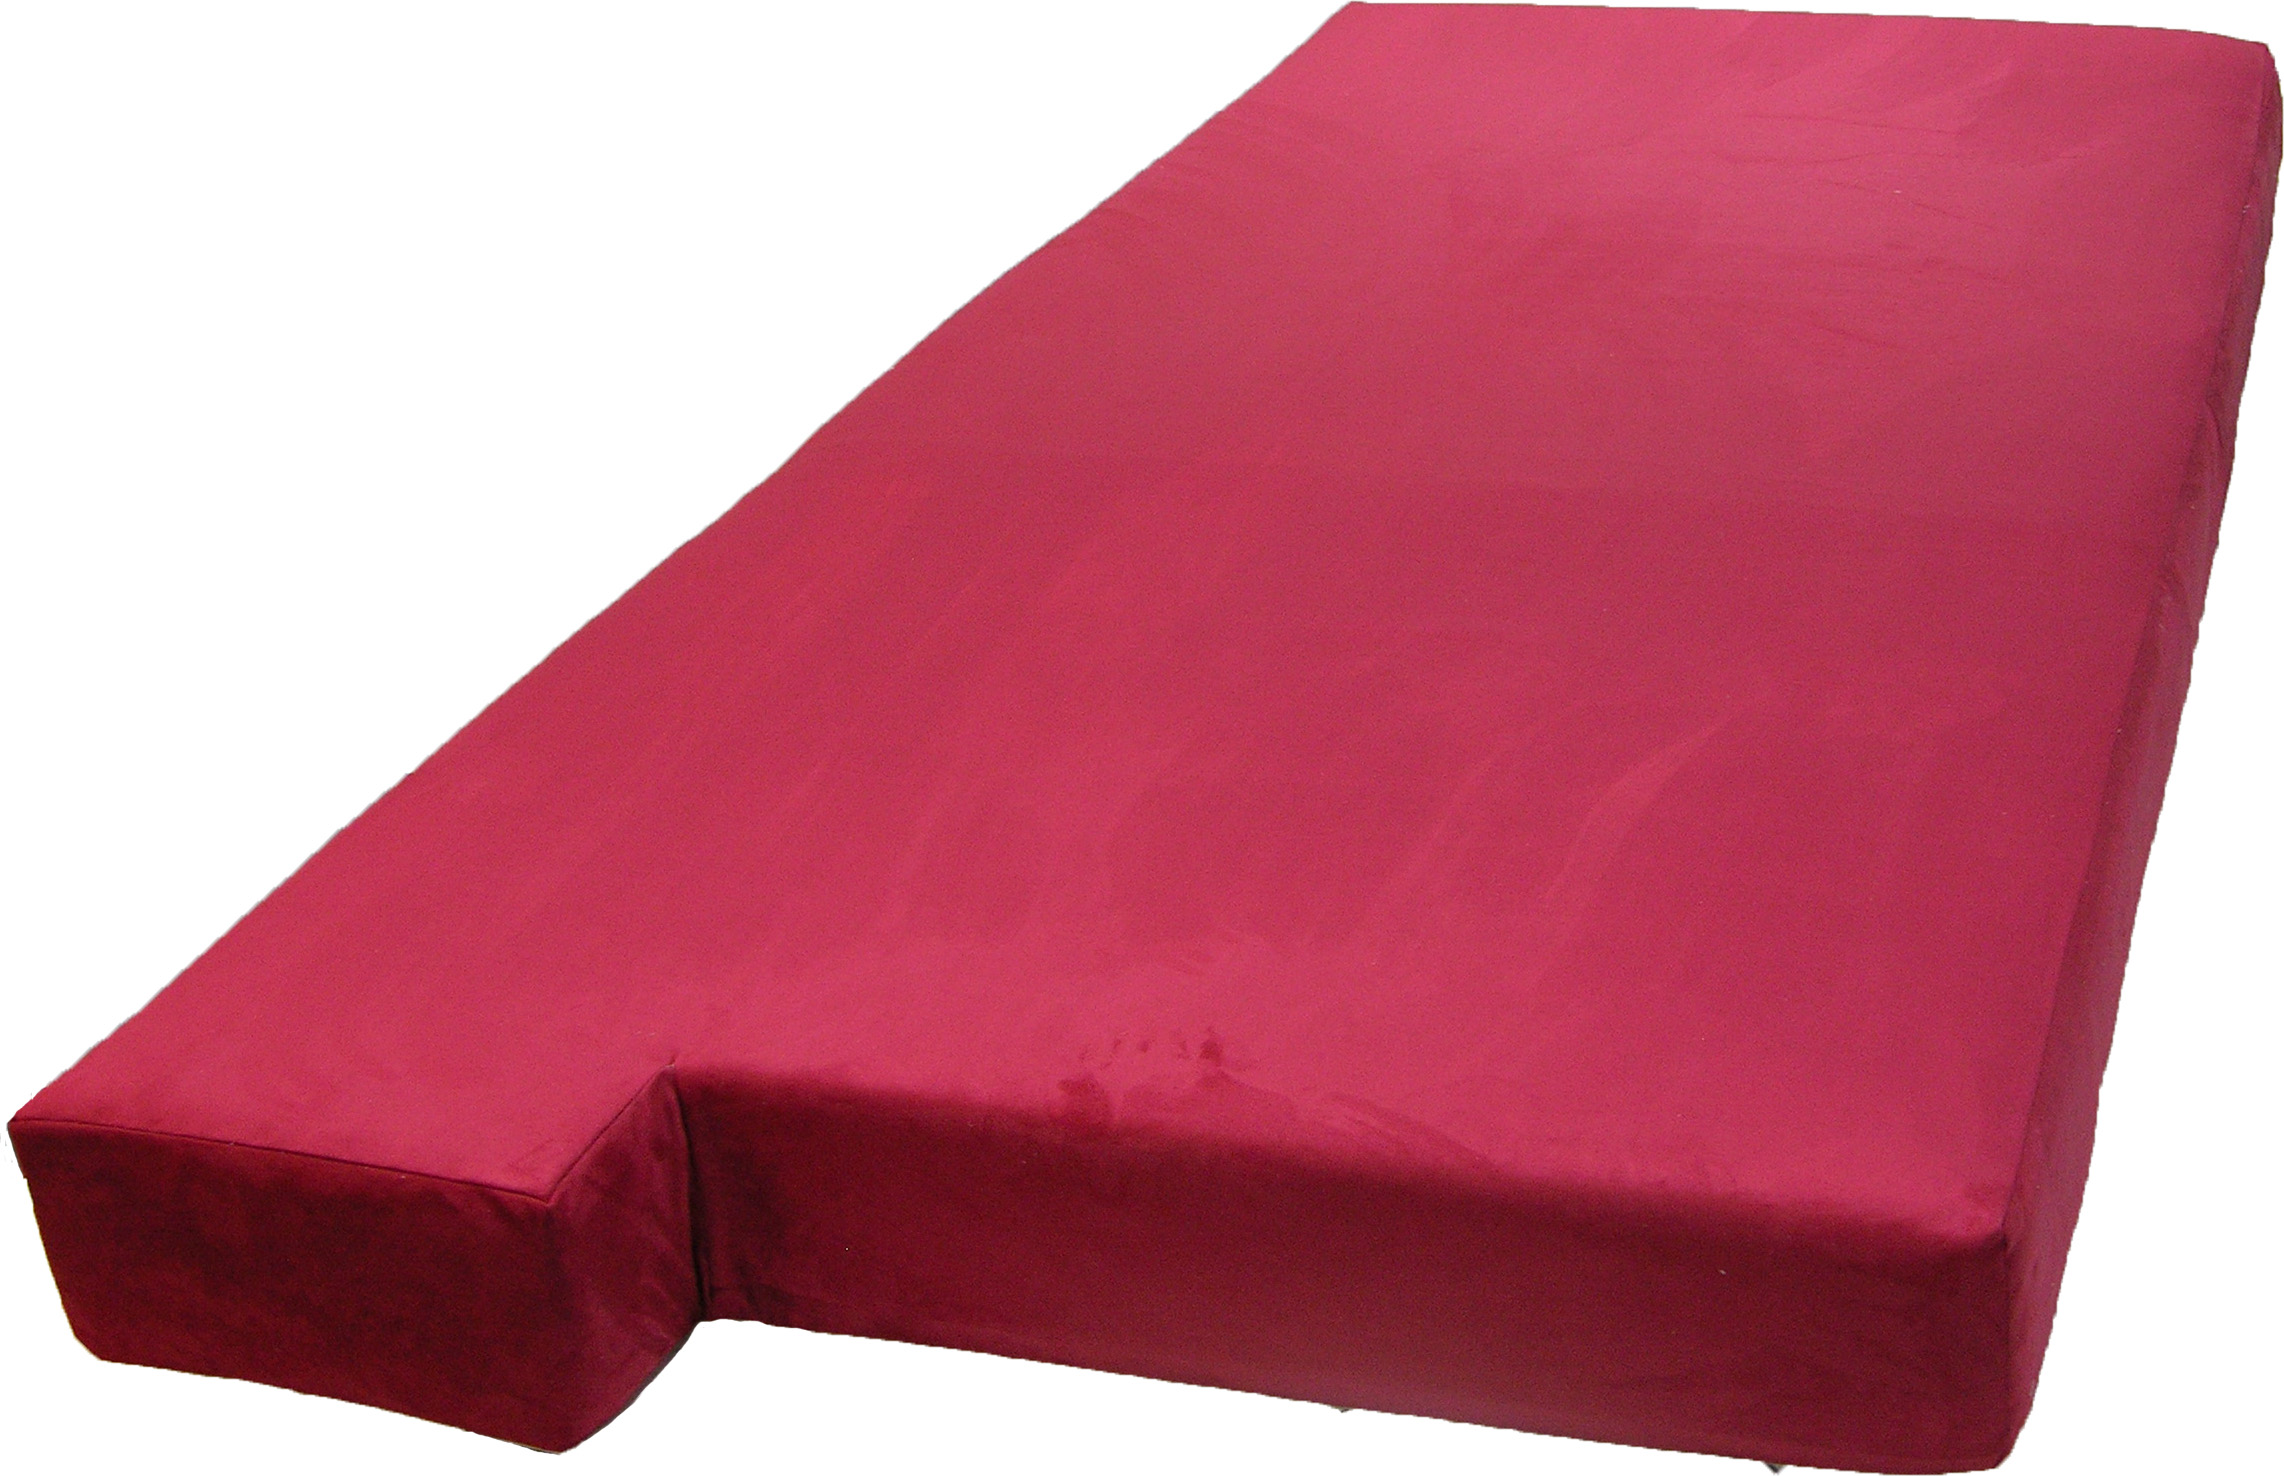 Large bay window seat cushion with 3 different colored covers